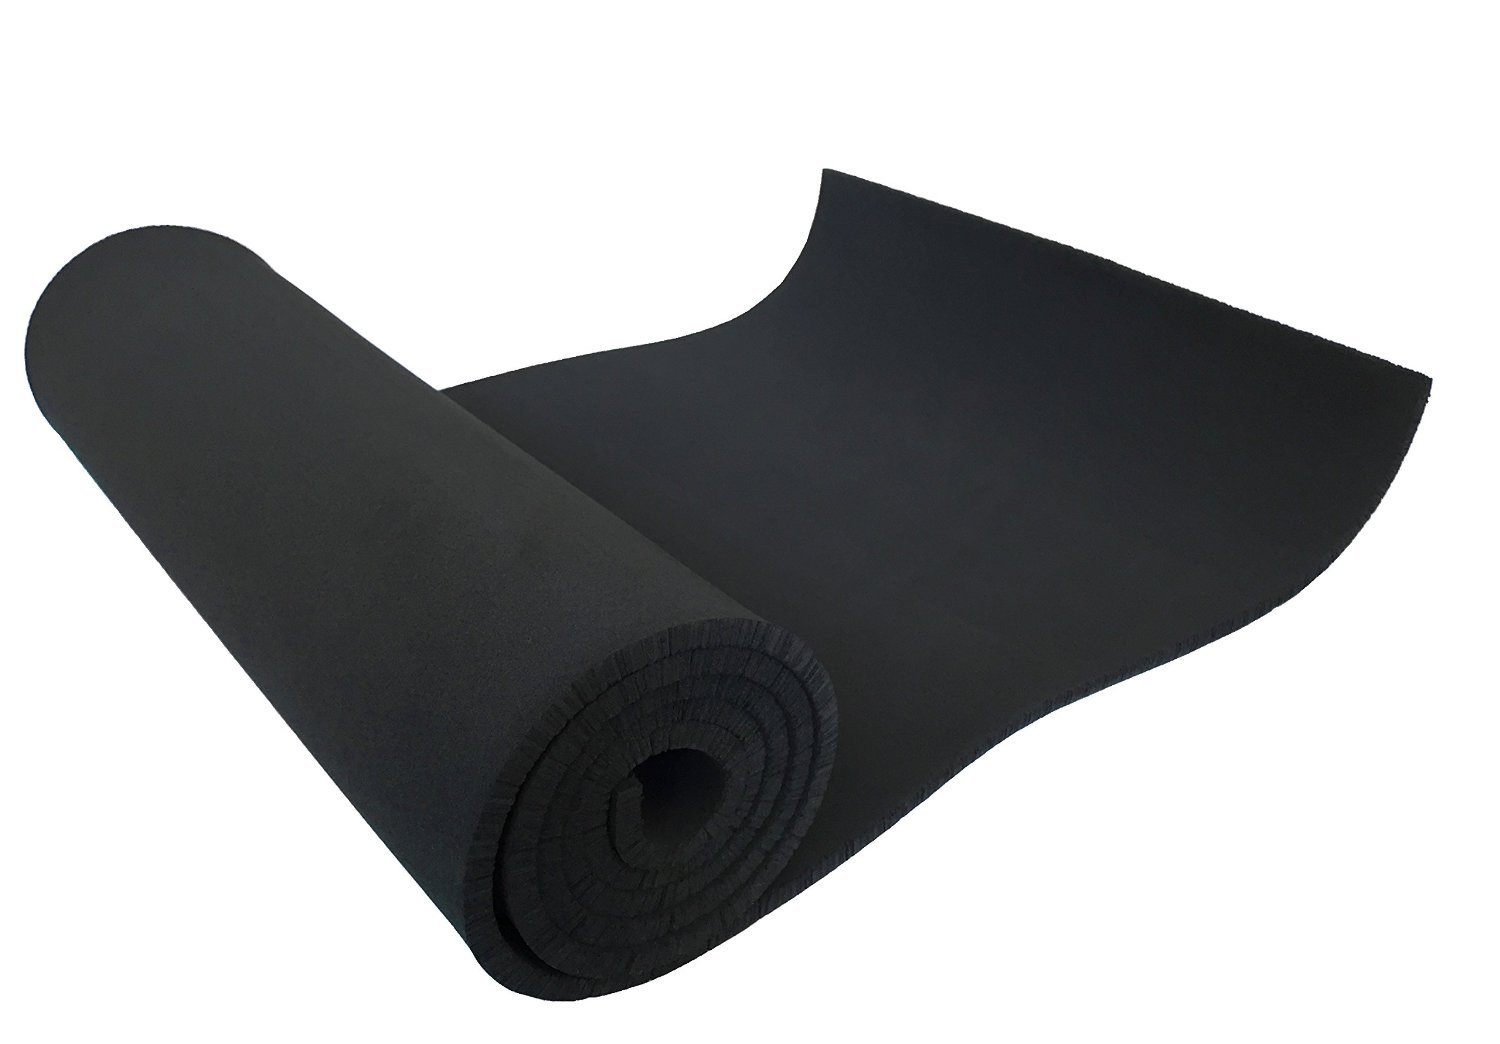 Made in USA 1829 mm x 432 mm x 6.35 mm Rubber Sheets Xcel Large Toolbox Liner Heavy Duty Neoprene Sheet 1829 mm X 432 mm X 6.35 mm Extra Thick Ez Cut Non-Slip Foam Rubber Toolbox /& Drawer Liner